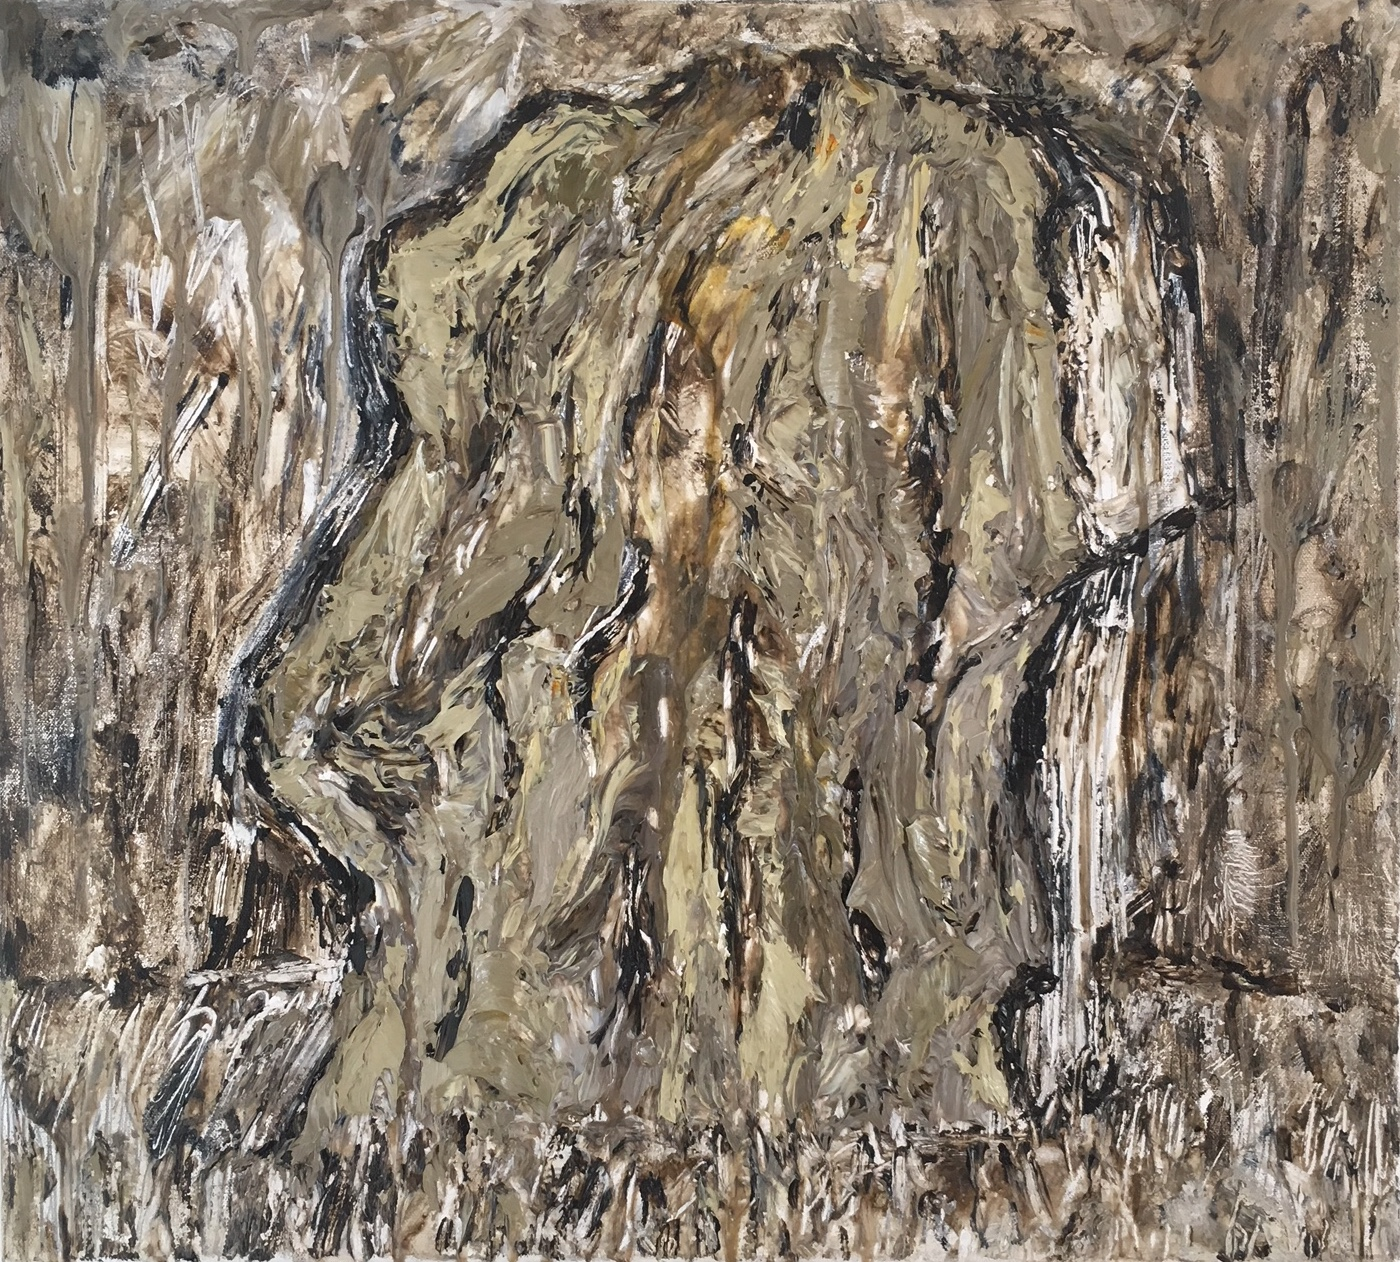 STUDY FOR MEGALITH